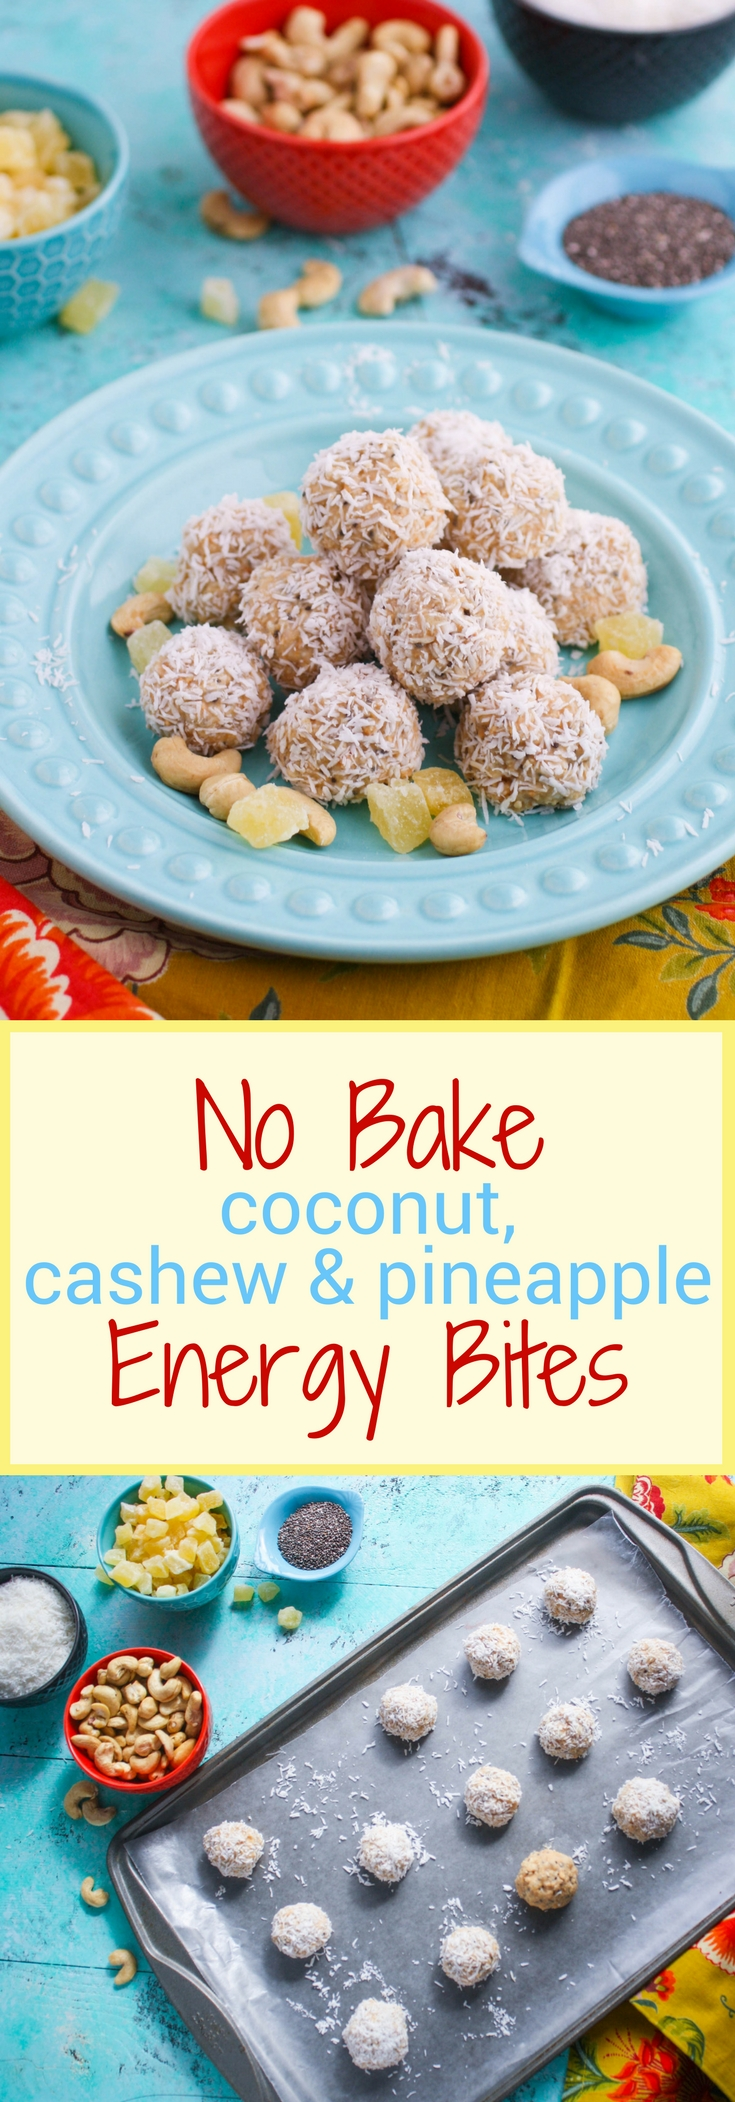 No bake coconut, cashew, and pineapple energy bites make a wonderful, healthy snack. You'll enjoy these no bake energy bites any time of day!